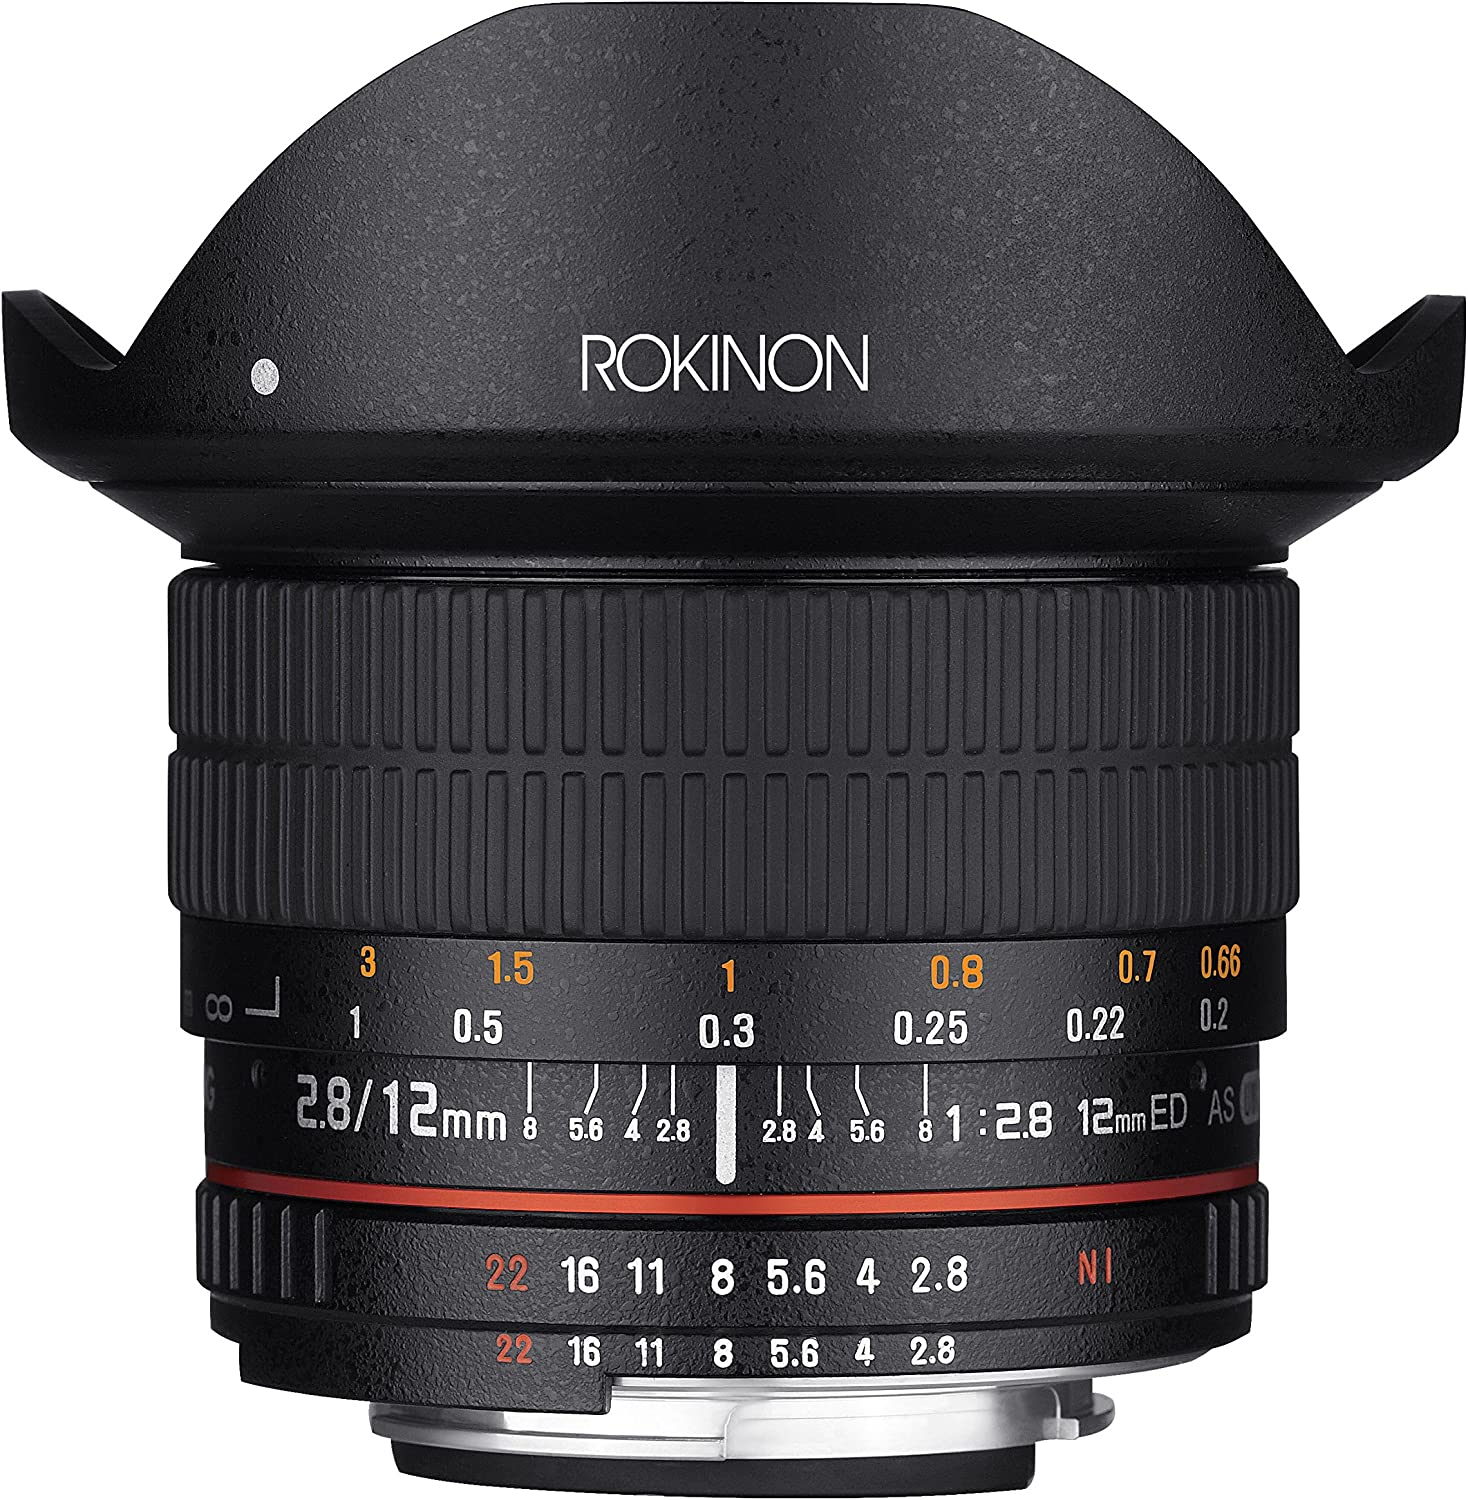 Rokinon 12mm F2.8 Ultra Wide Fisheye Lens for Canon EOS EF DSLR Cameras - Full Frame Compatible